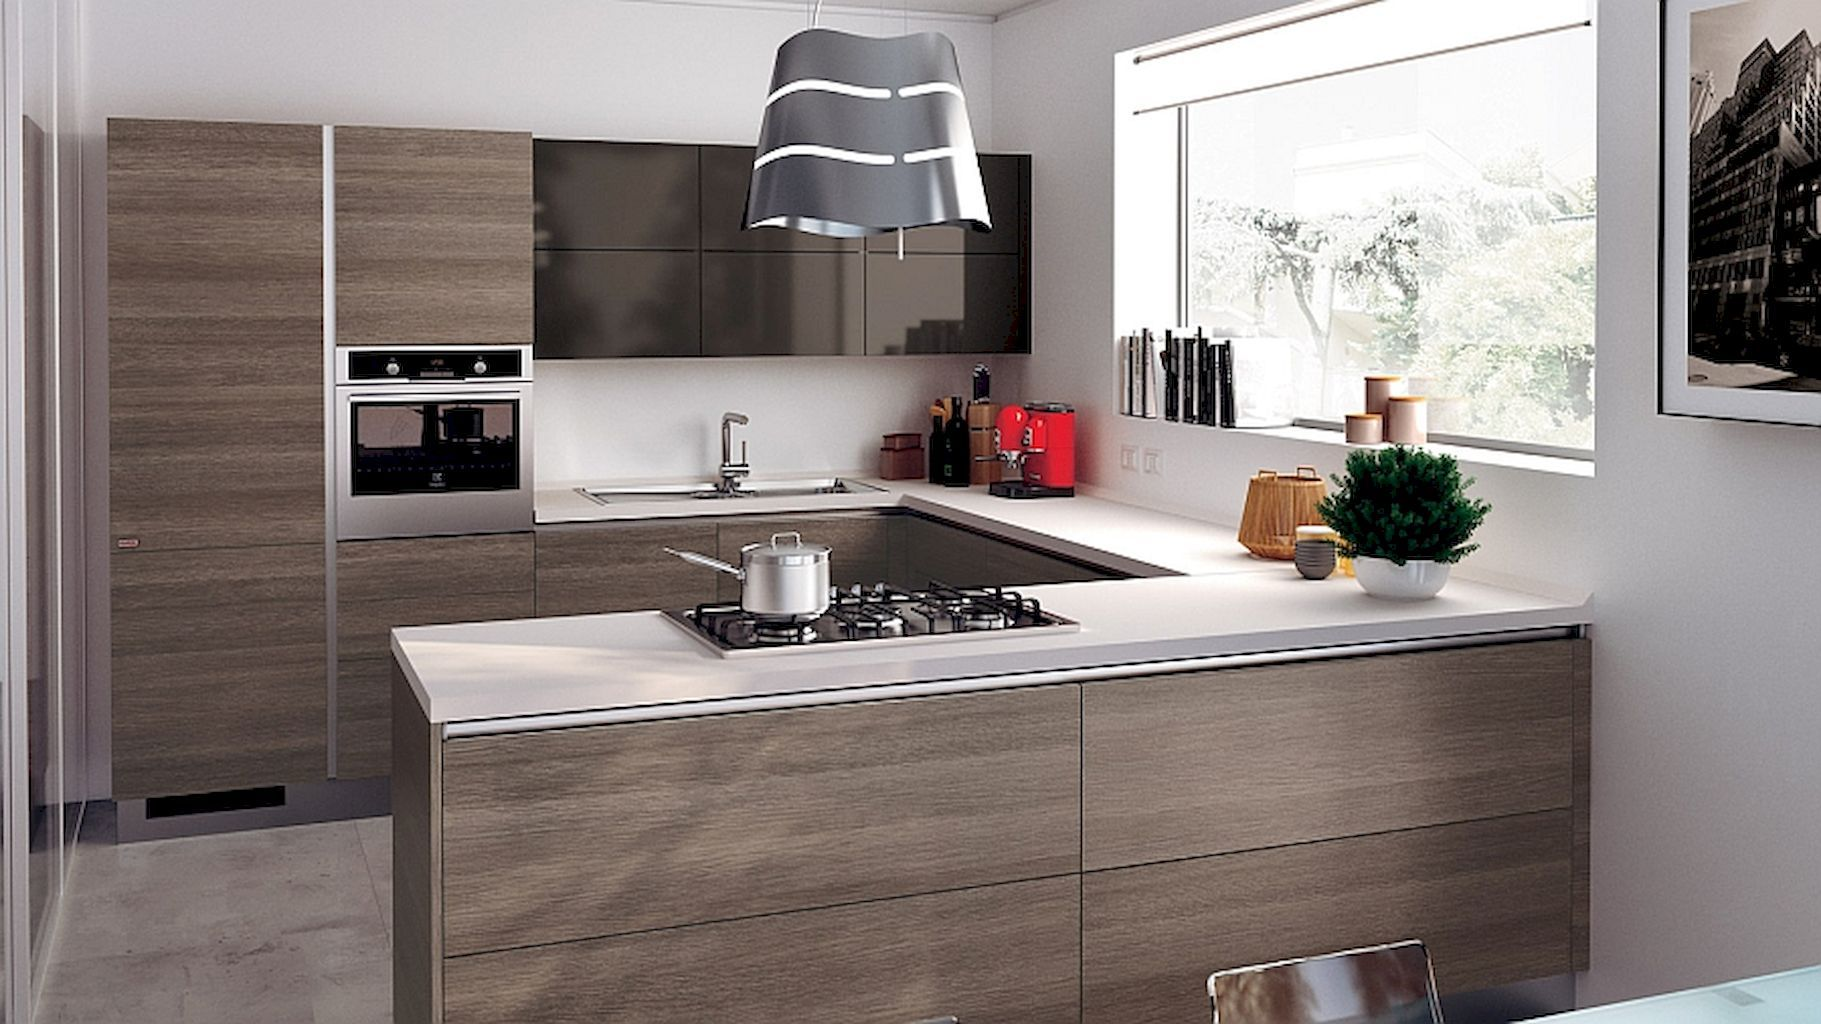 60 Modern Kitchen Design Ideas And Remodel in 2020 ...